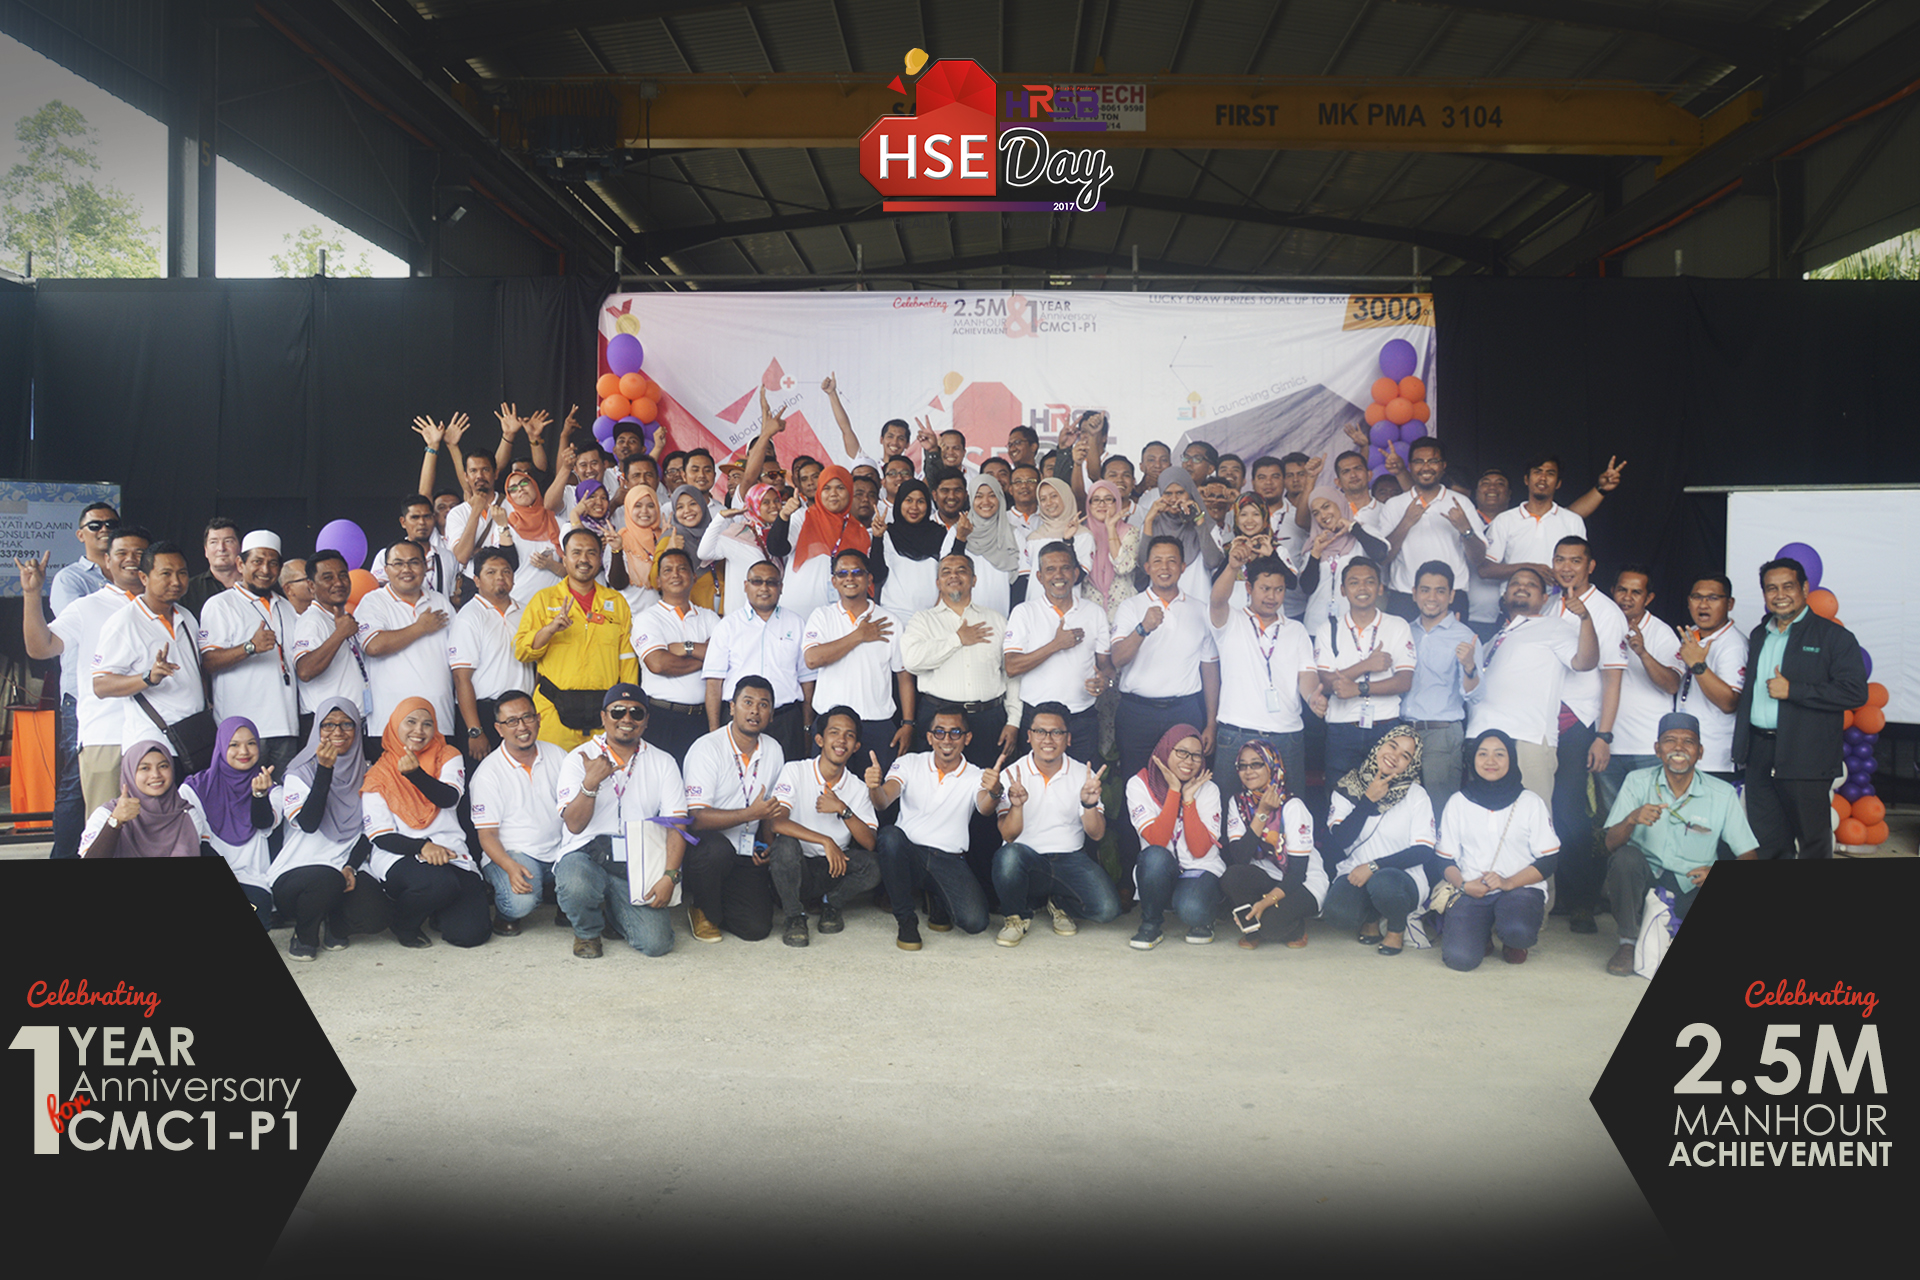 HSE DAY 2017